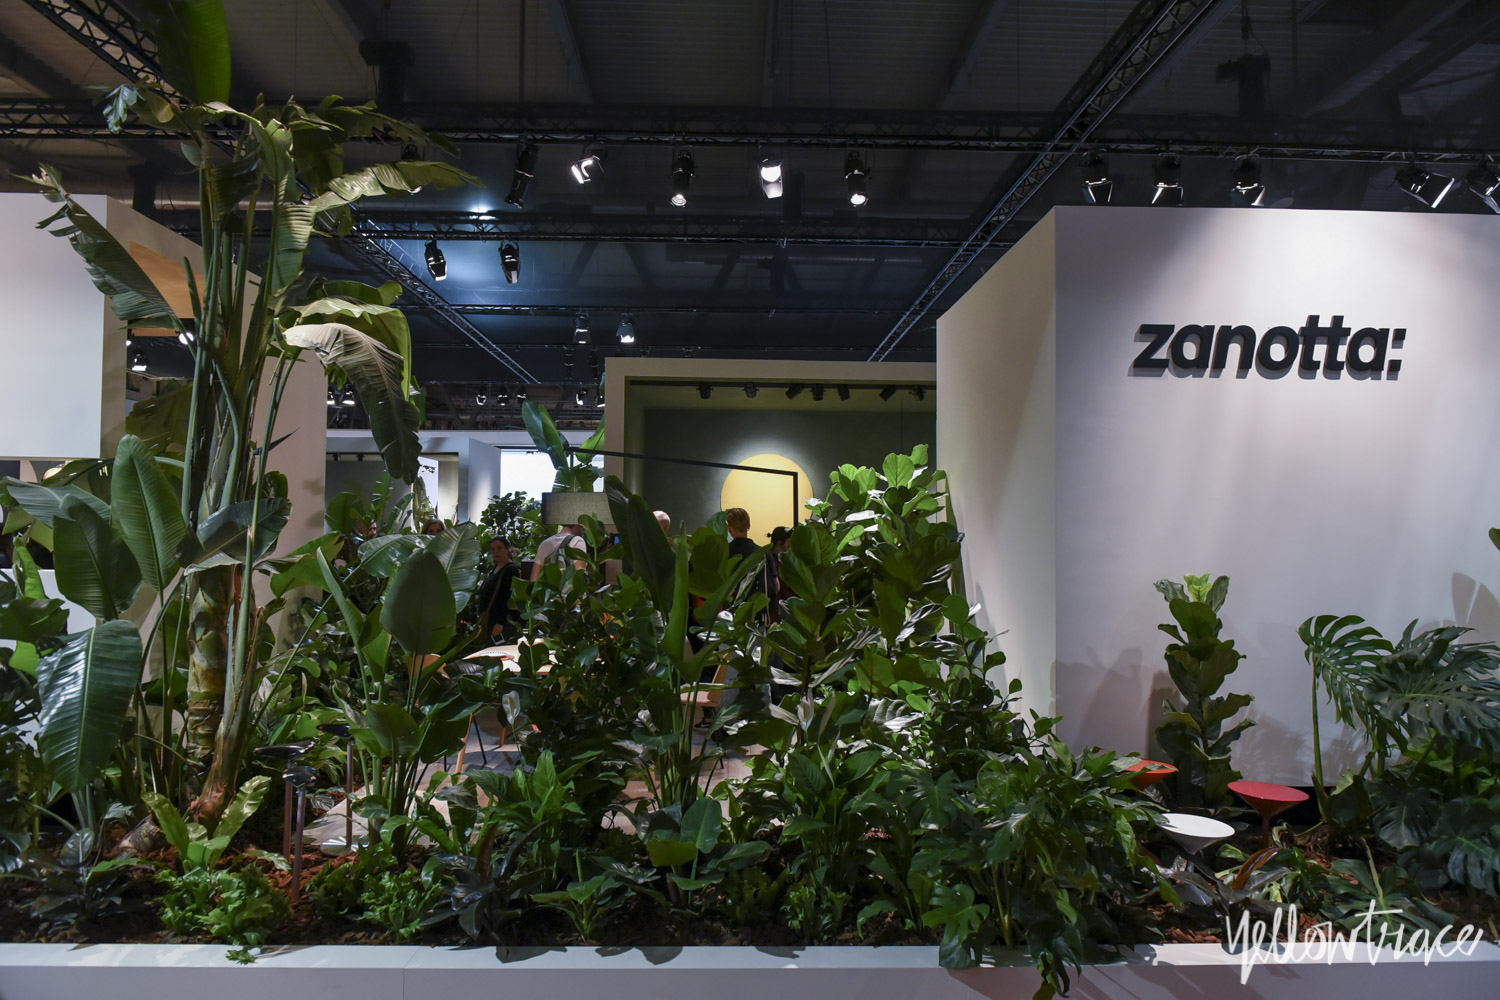 Zanotta at salone del mobile milano 2016 photo nick for Fiera del mobile 2016 milano